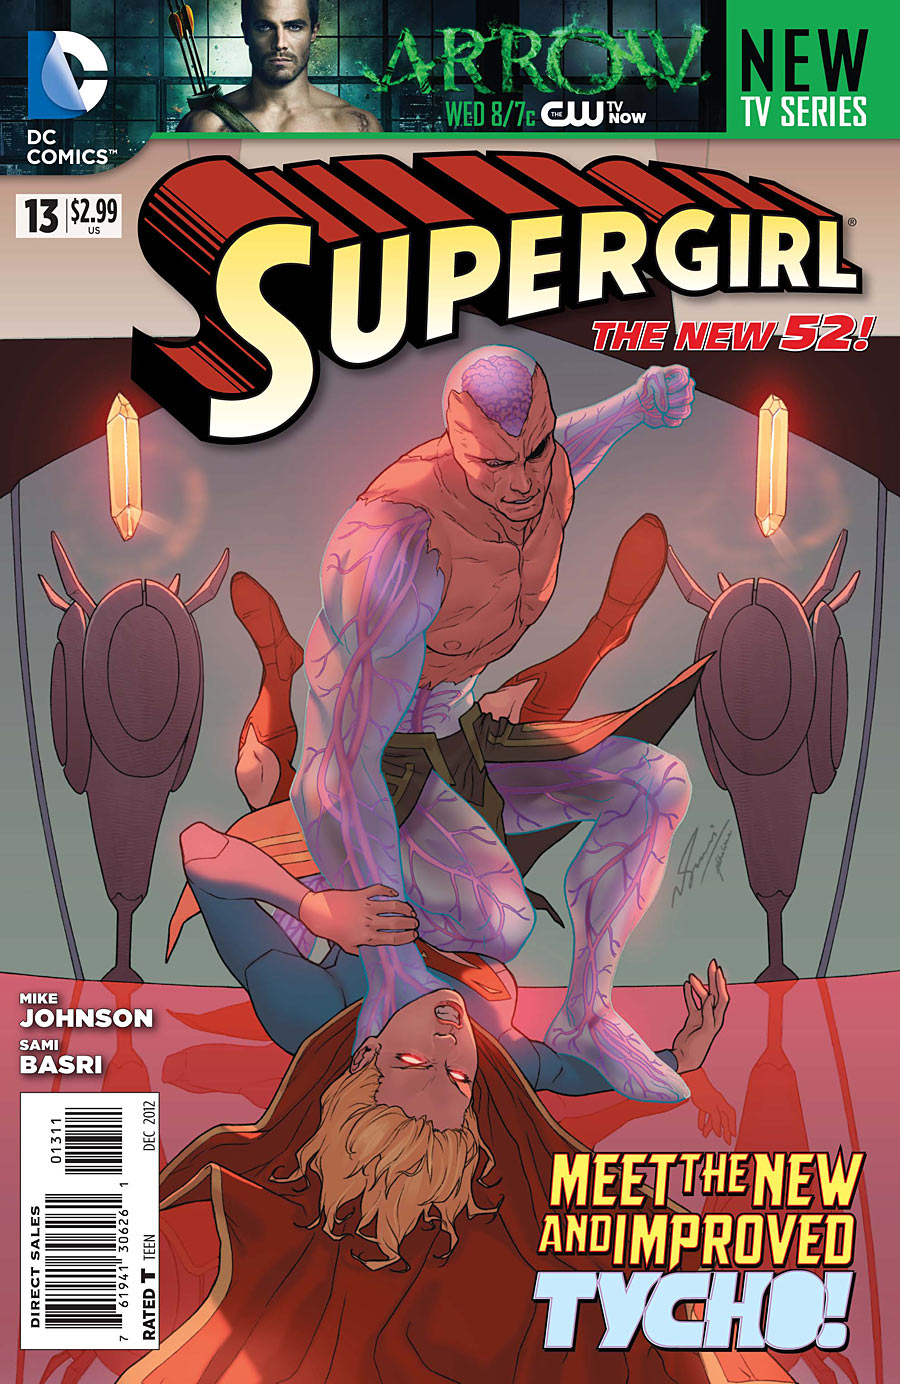 Supergirl (The New 52) #13